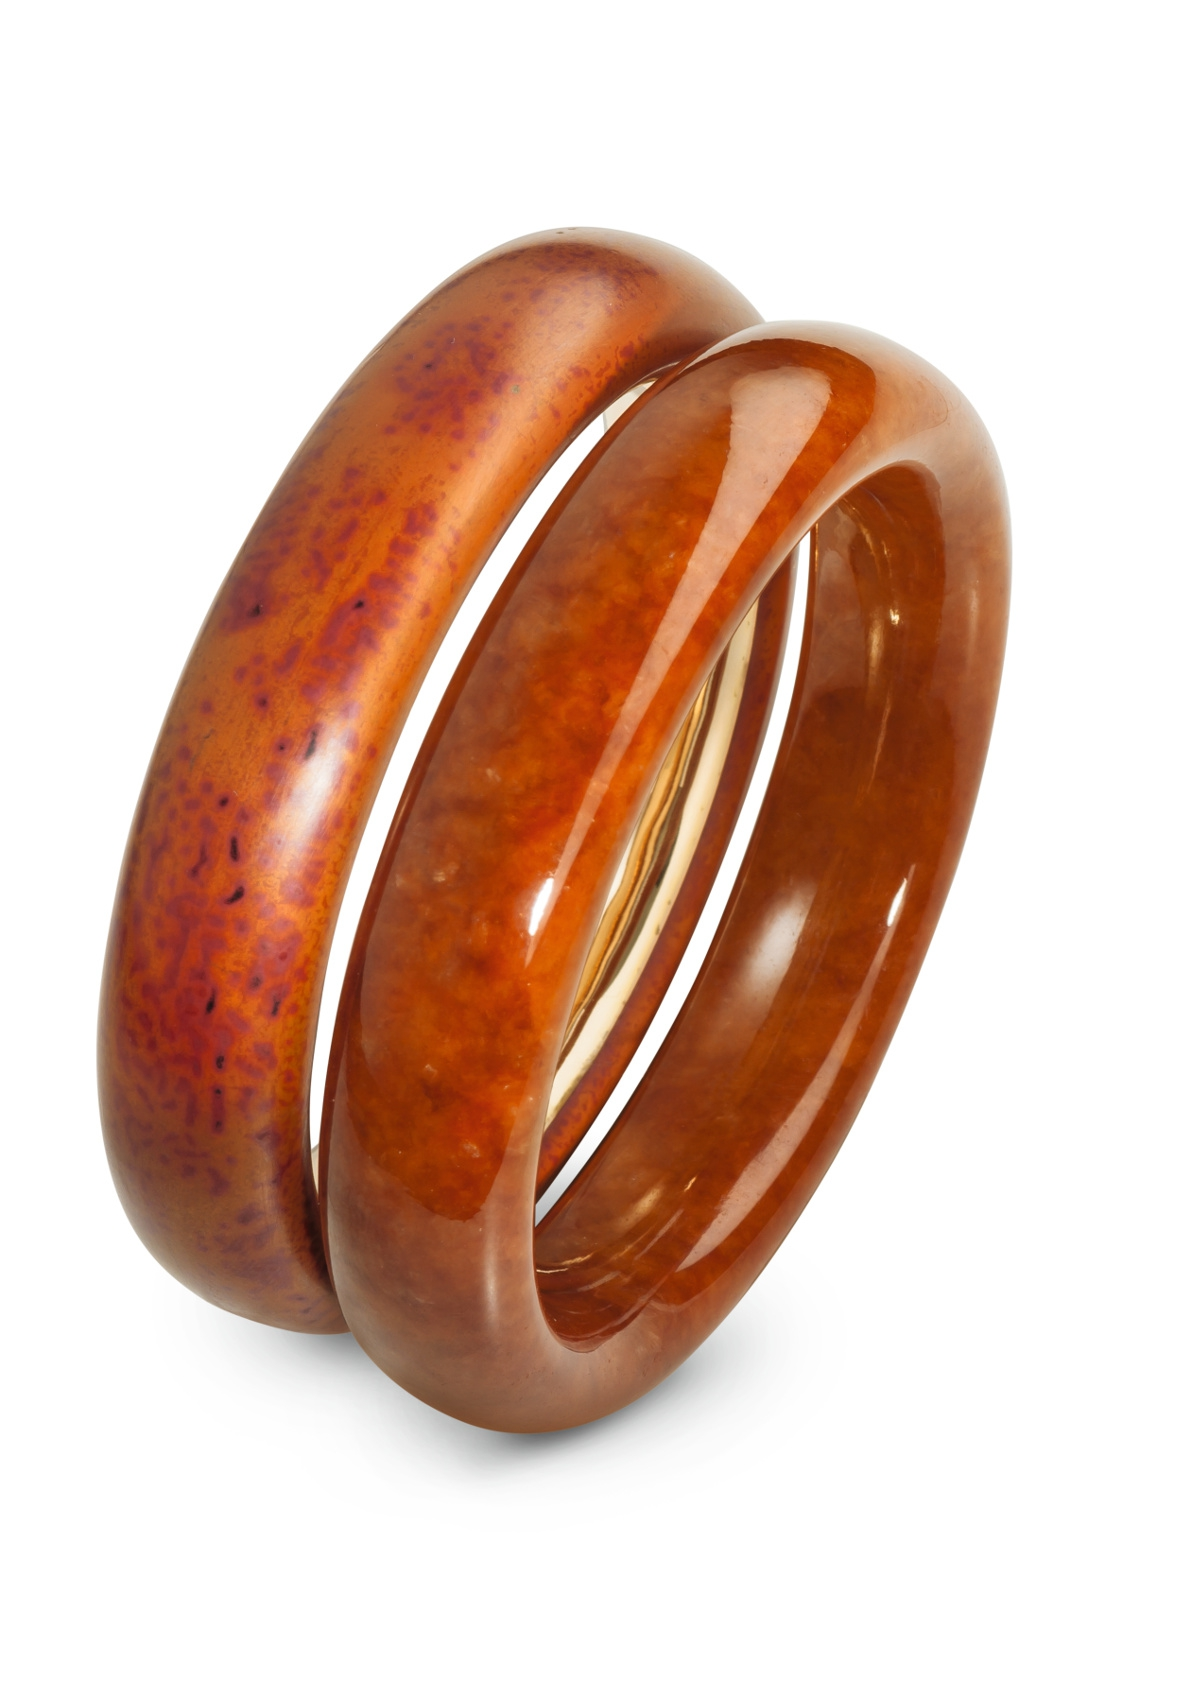 hemmerle-bangles-jade-copper-gold-0691-14_copy